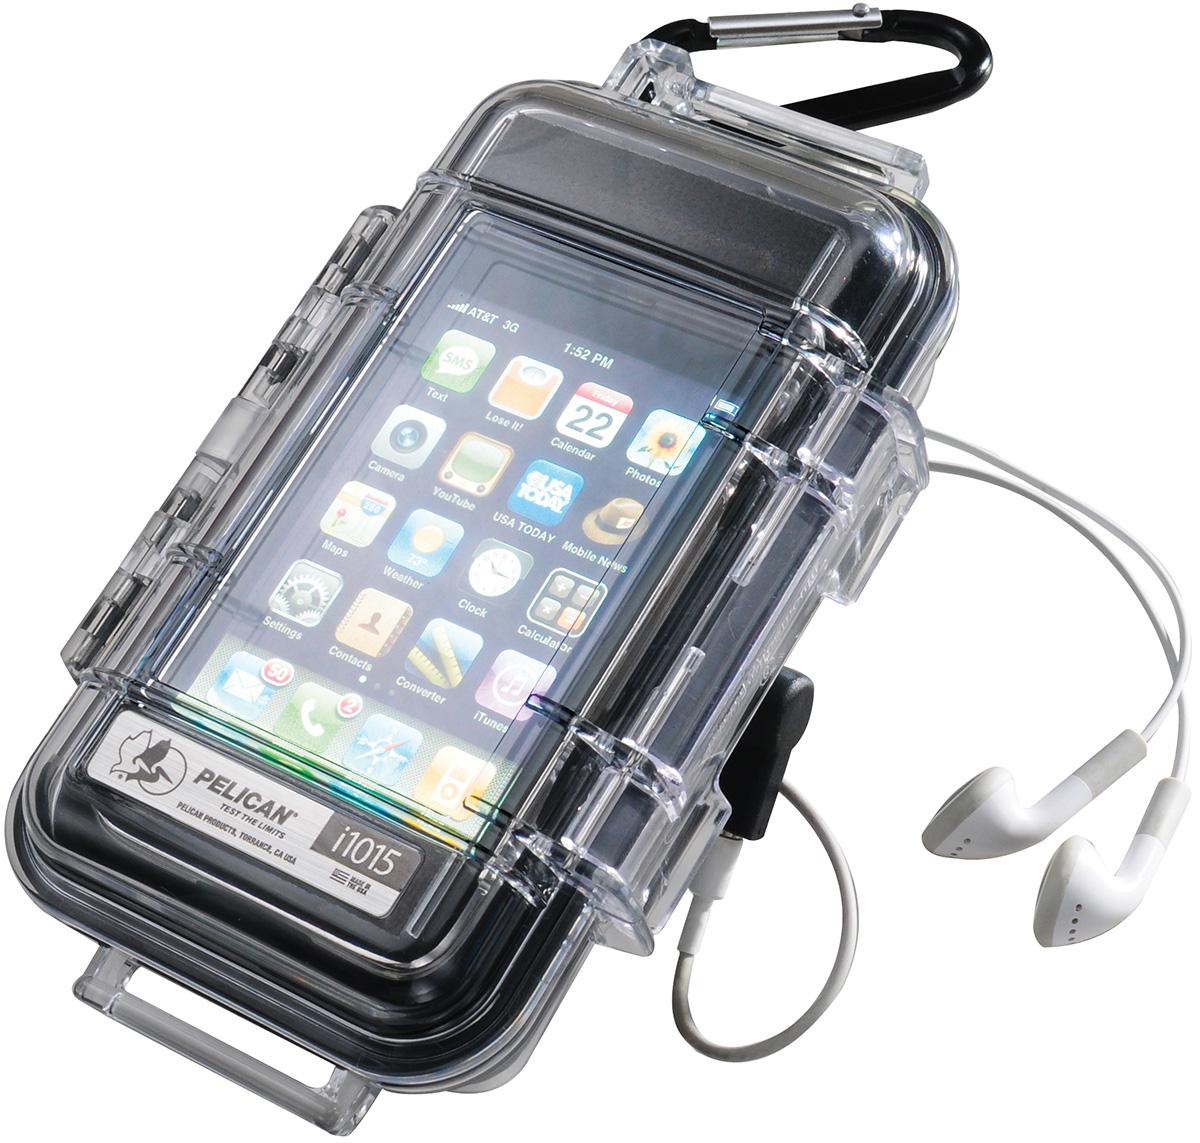 pelican peli products i1015 waterproof iphone protection case